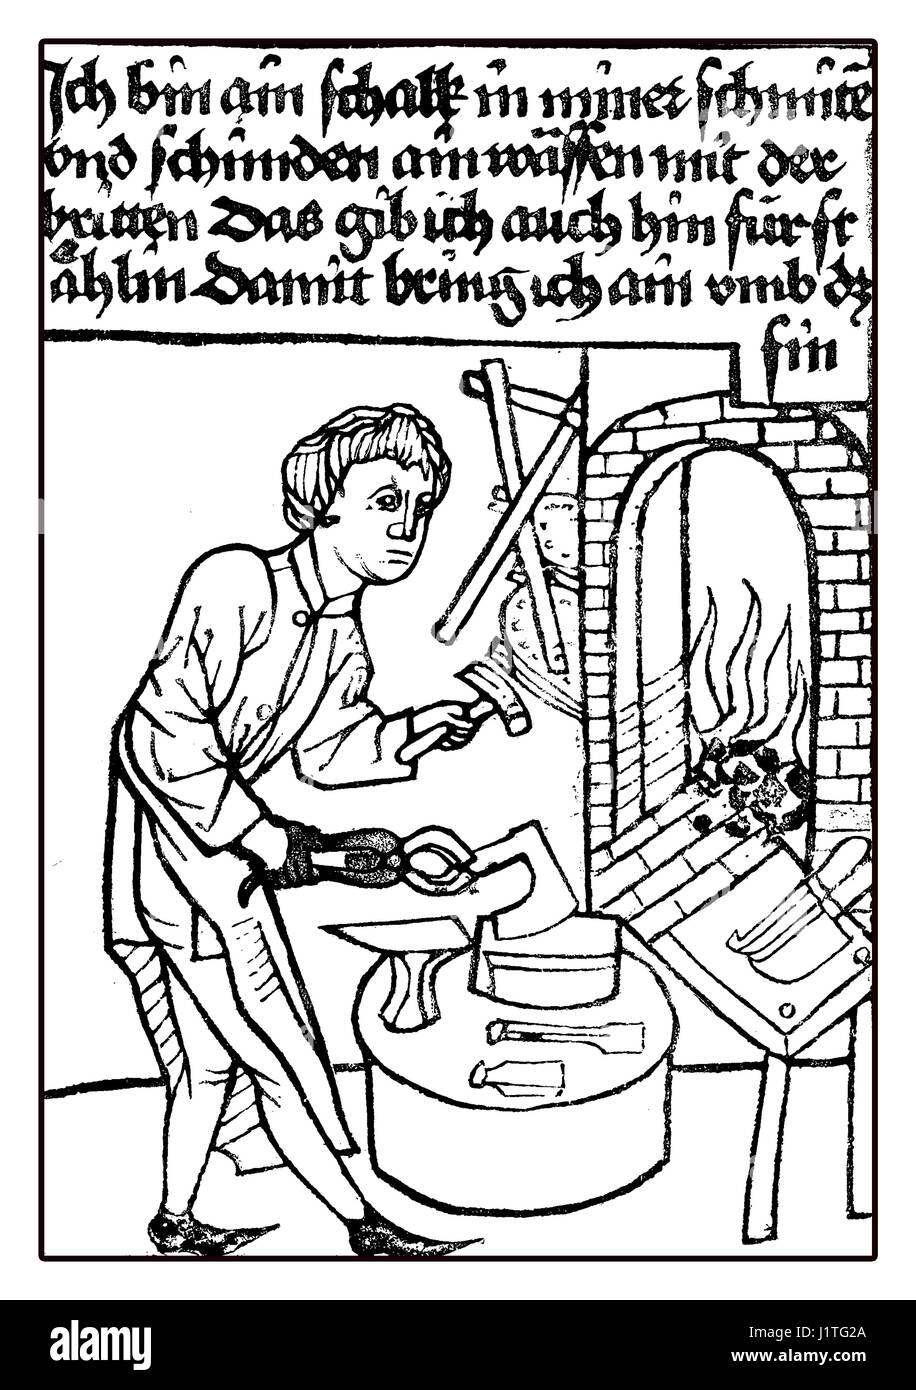 XV century: a treacherous armourer working at forge,medieval image - Stock Image